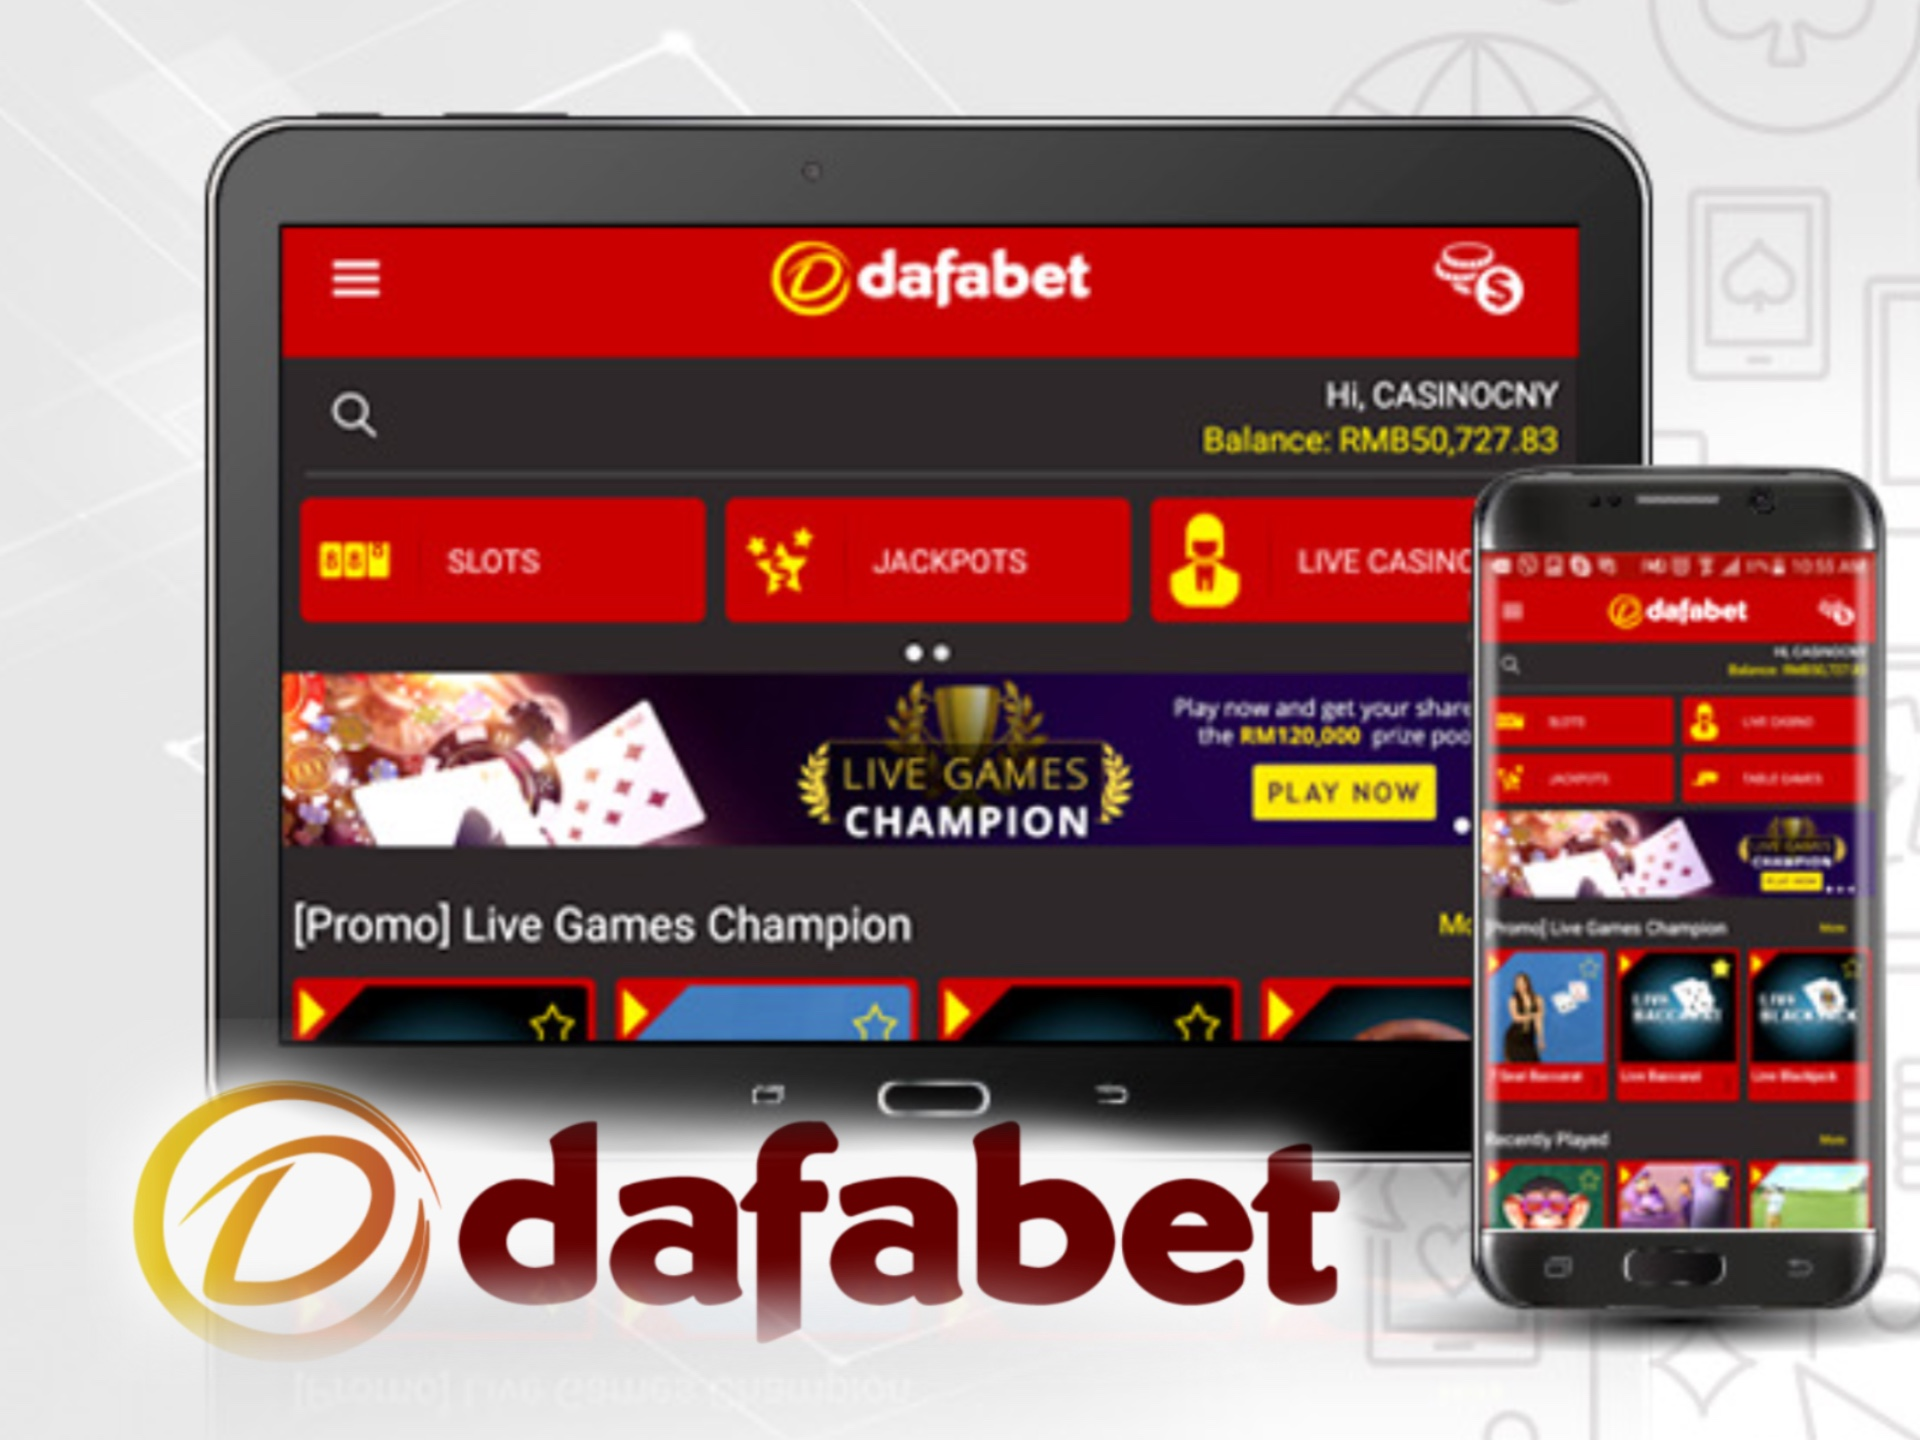 Dafabet app is the most convenient way to place bets and play casino games.